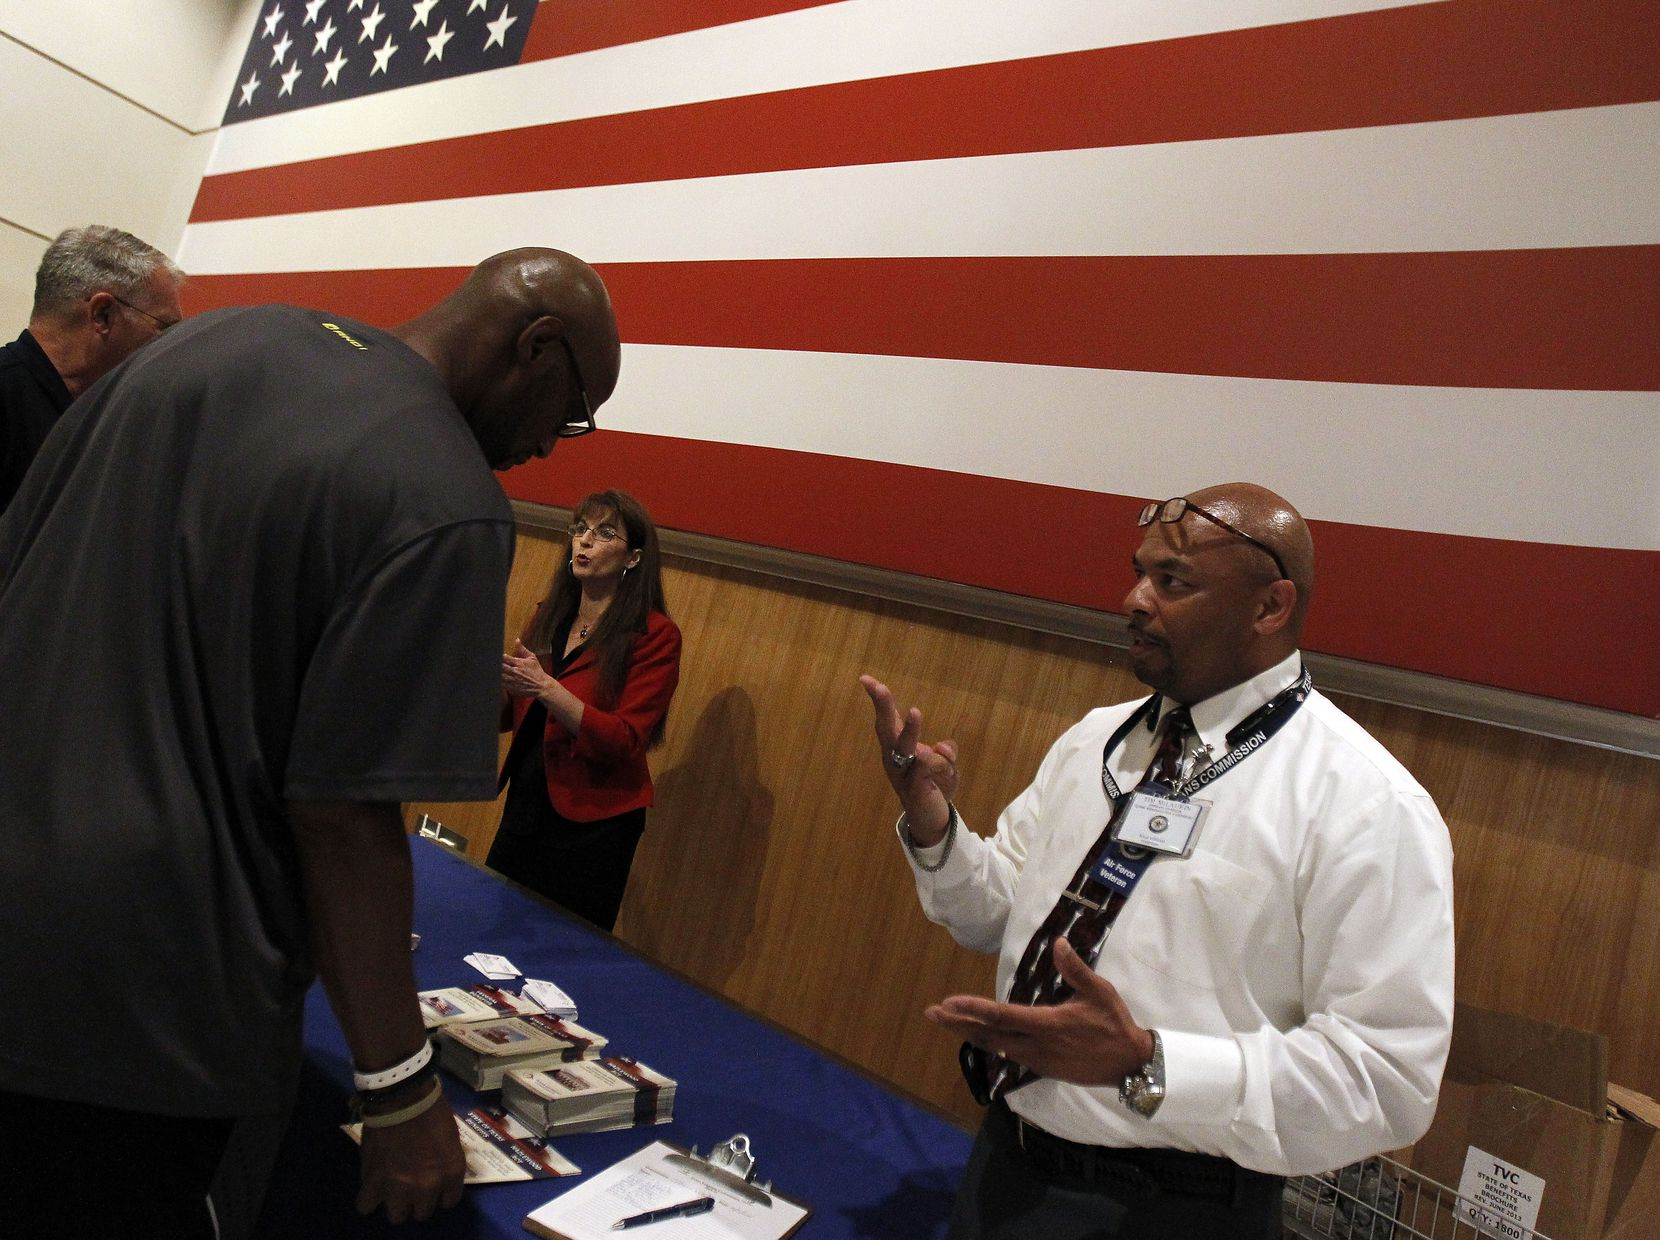 In June 2014, a veterans counselor with the Texas Veterans Commission answered questions about services available during a health fair at the VA.  A veterans benefits health fair, sponsored by the VA North Texas Health Care System, provided information on services available at the Dallas VA Medical Center.